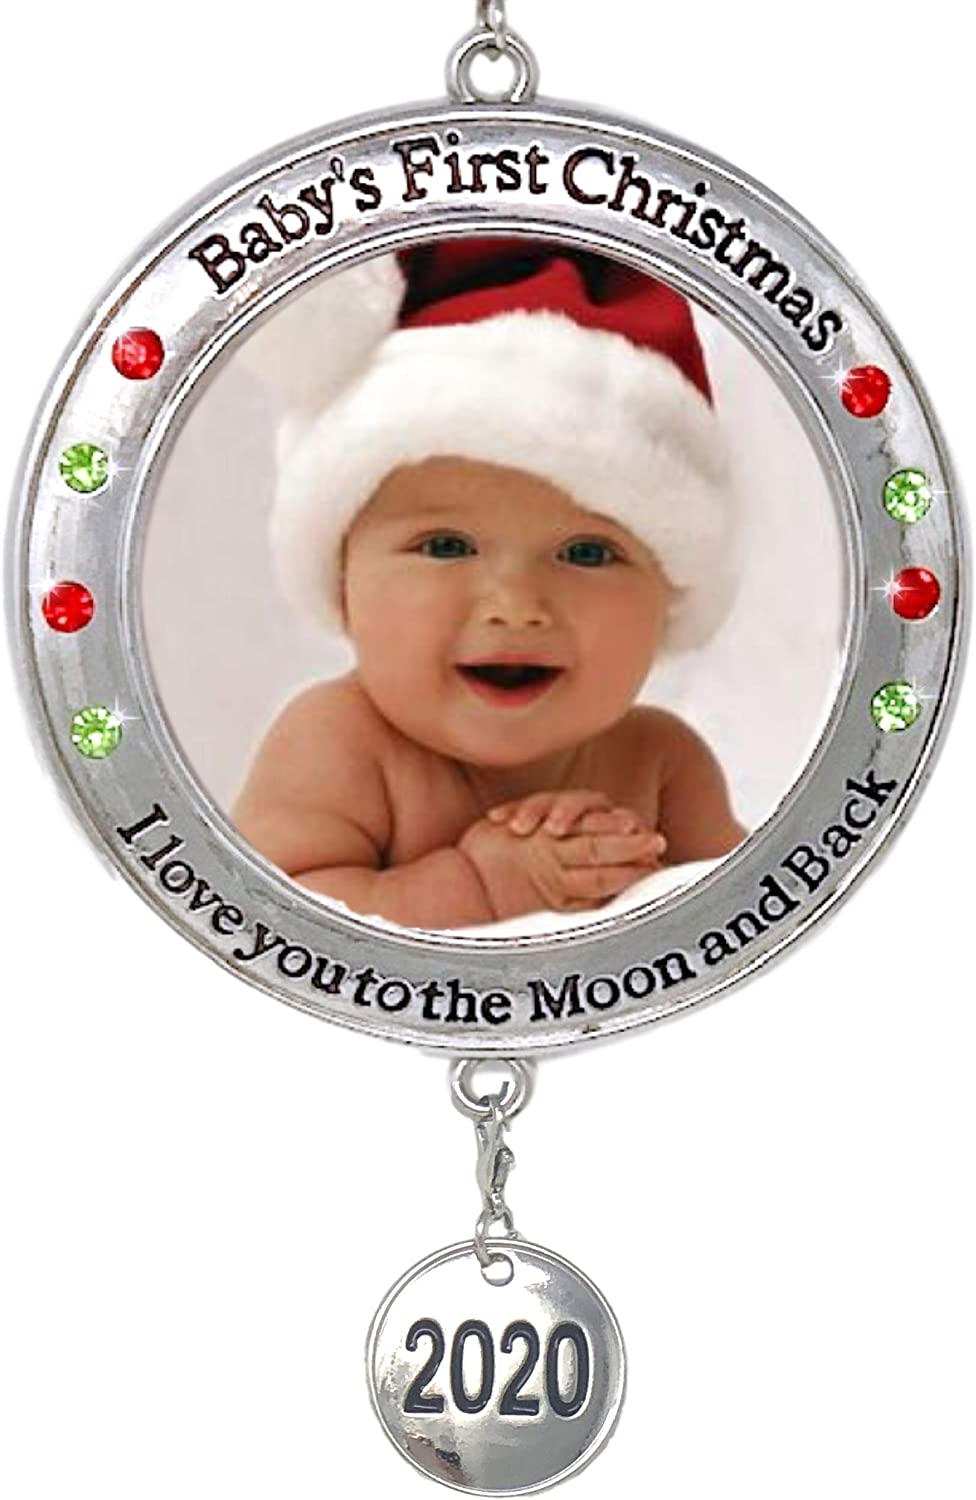 Baby's First Christmas - 2020 Photo Xmas Ornament